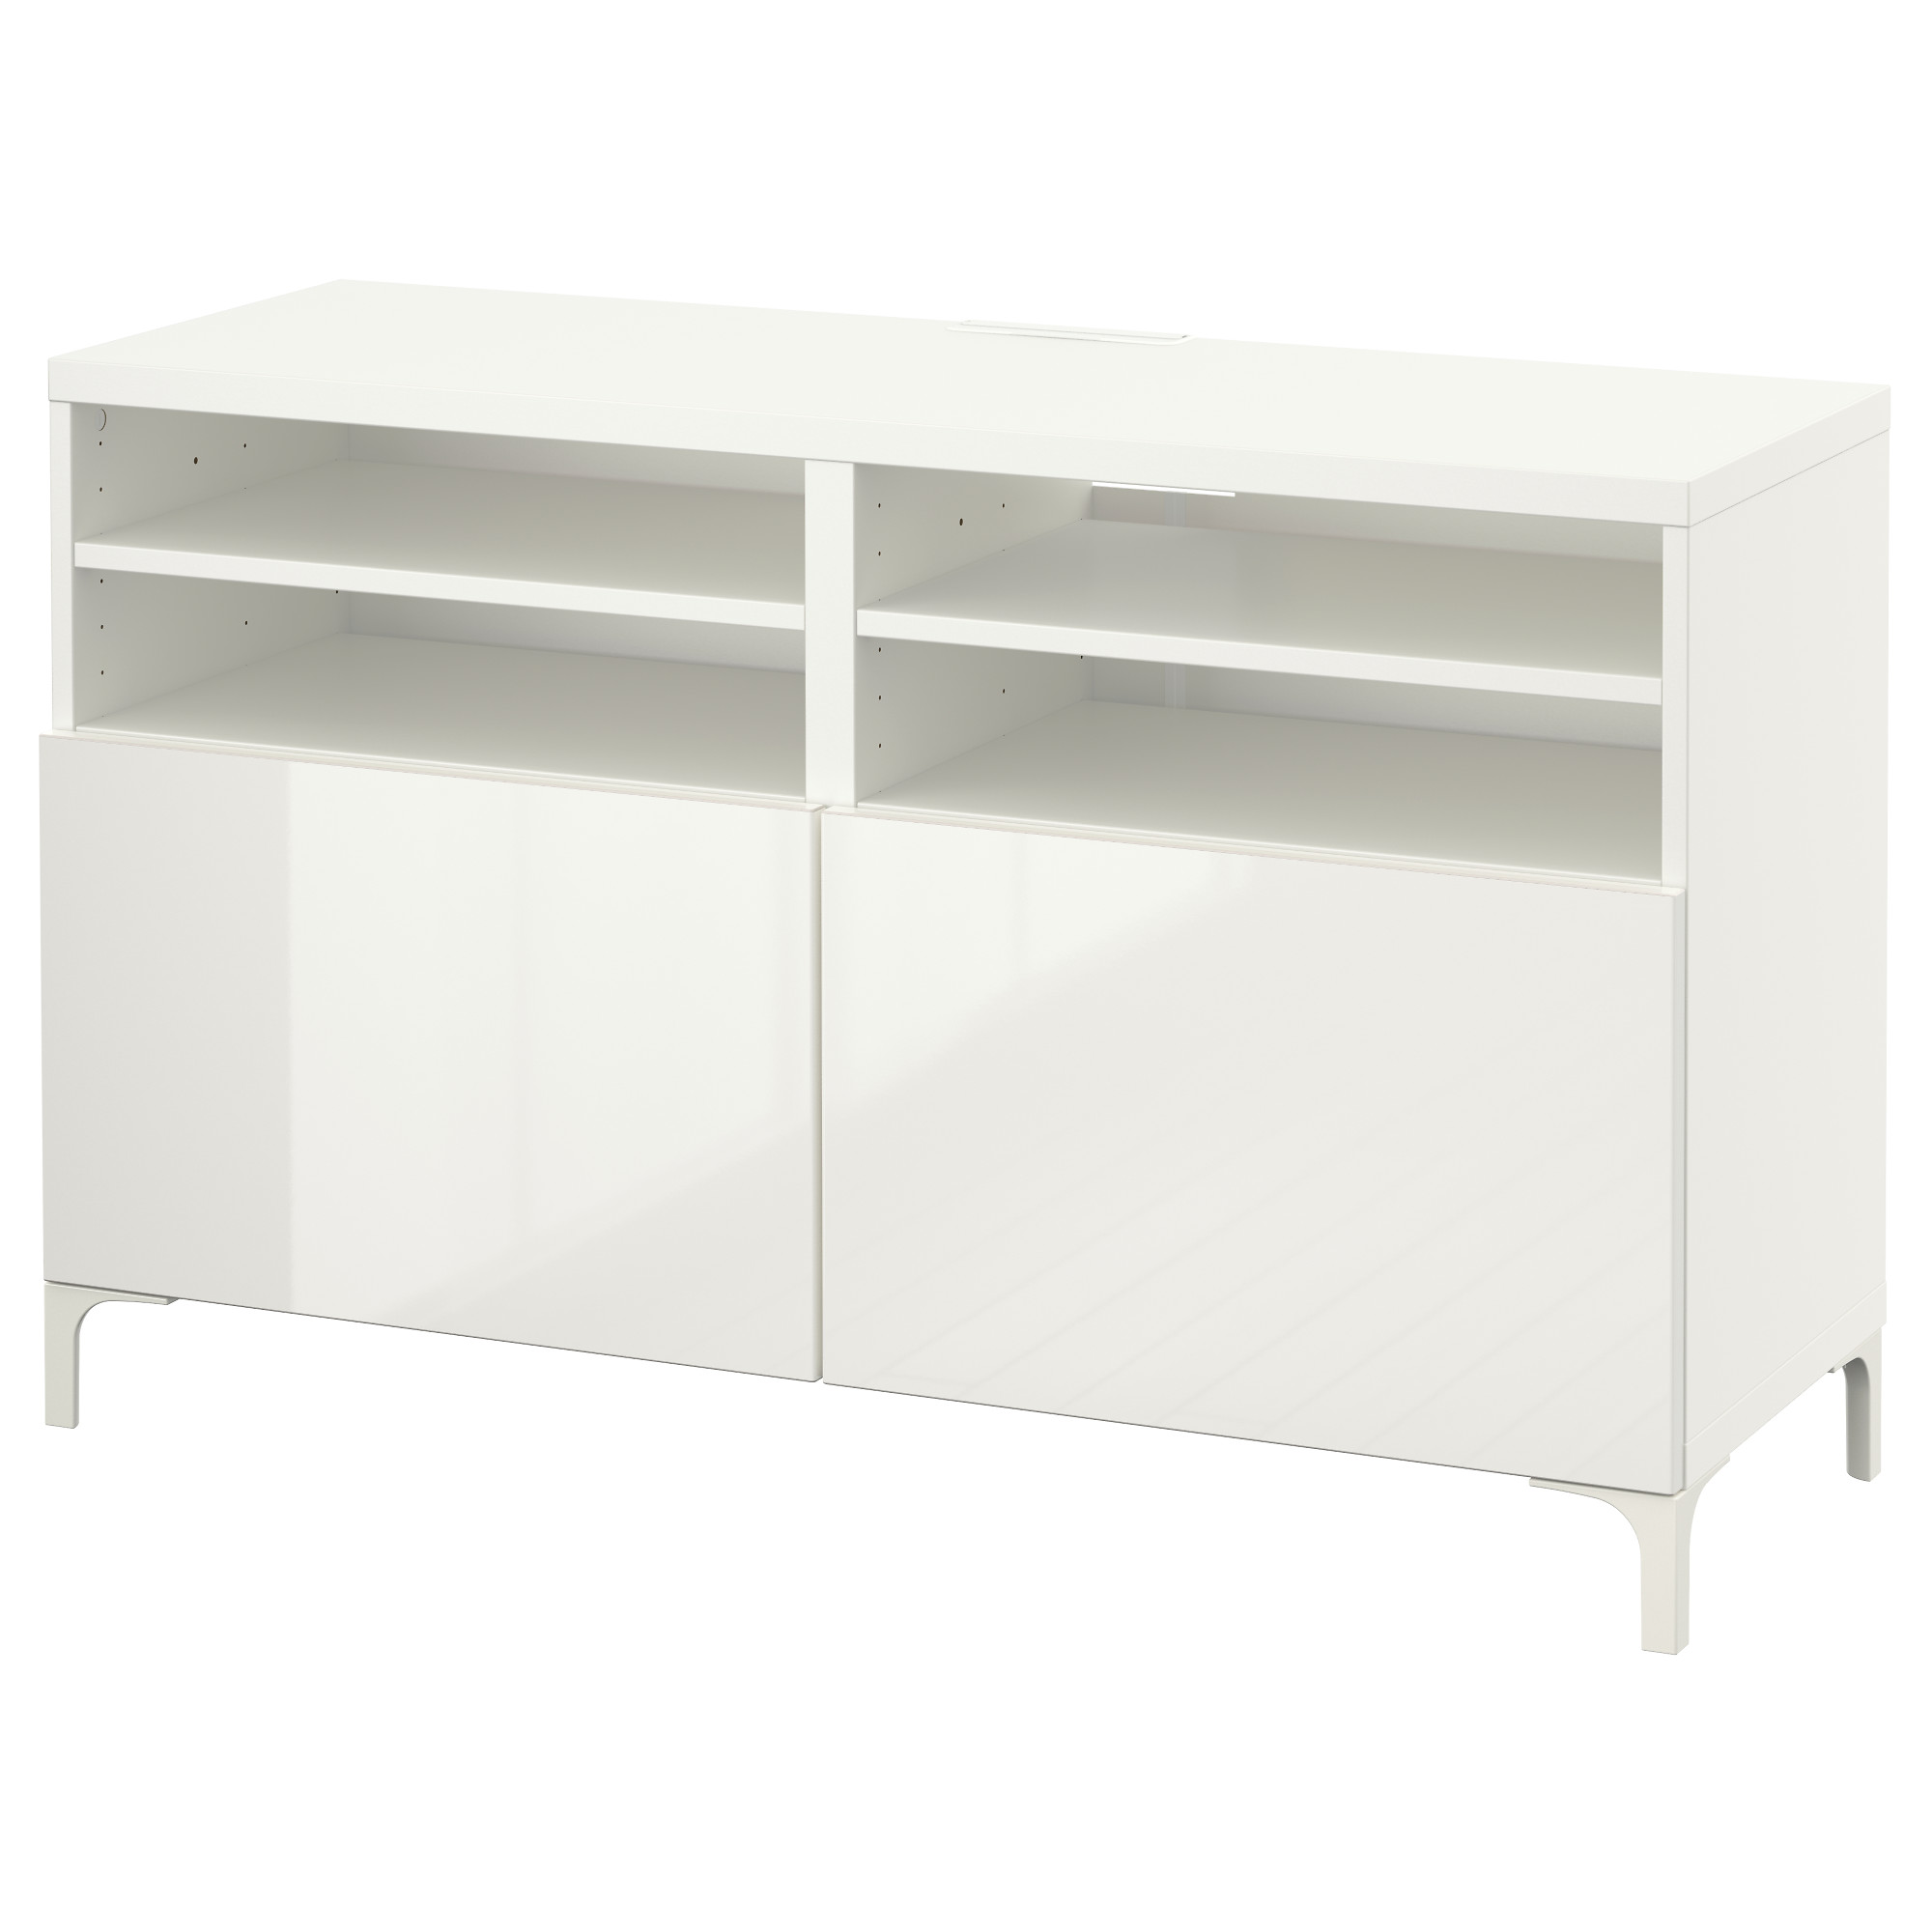 Meuble bas tv blanc ikea solutions pour la d coration for Meuble bas tv ikea